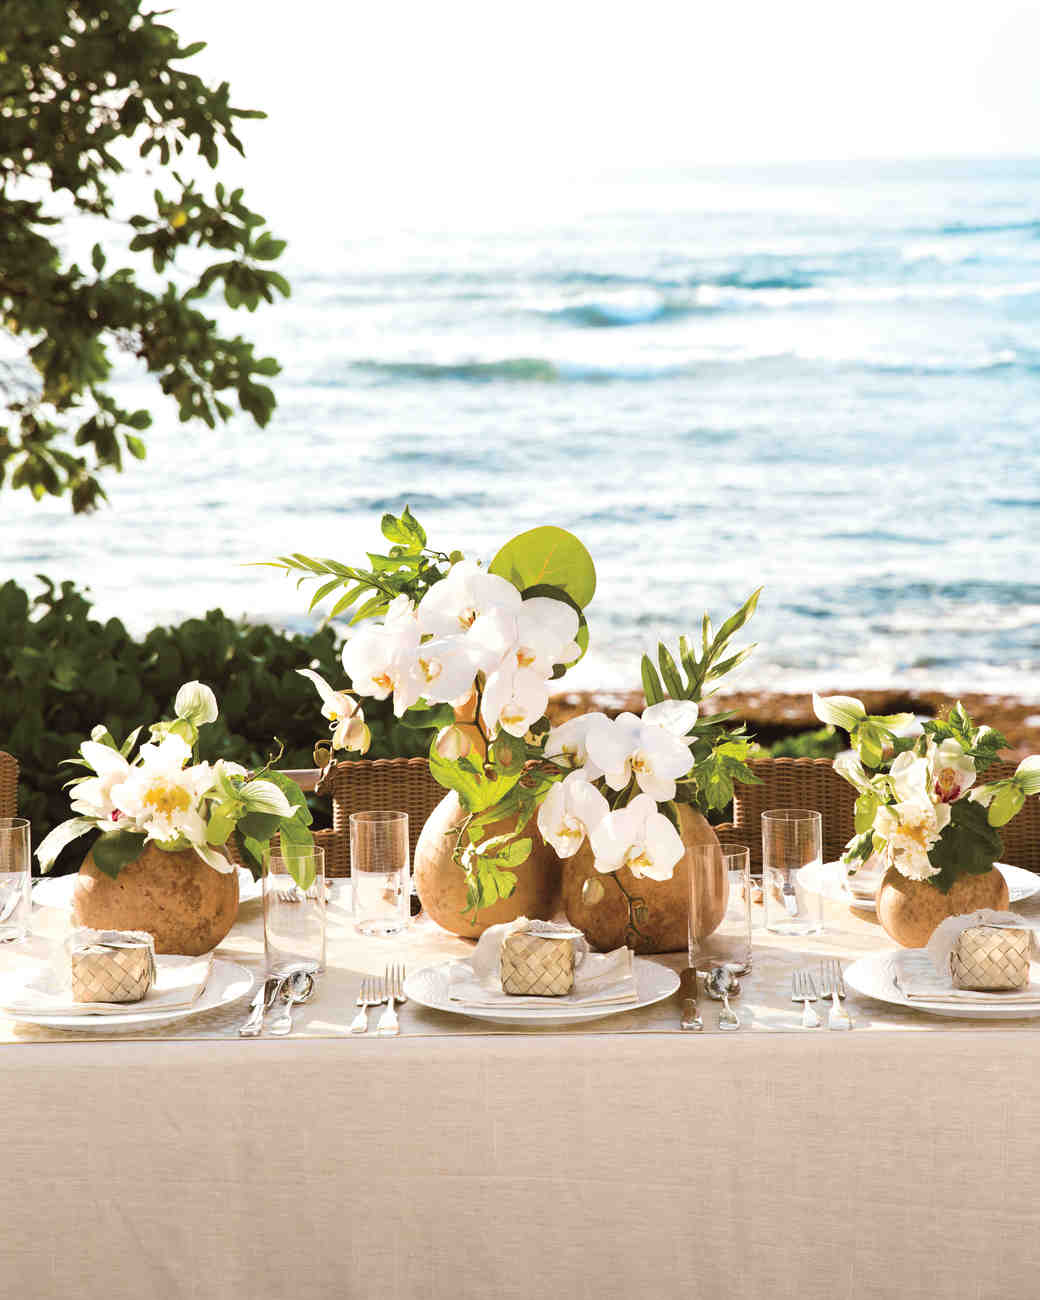 Wedding Theme Ideas: Island Time: 10 Ideas For Throwing A Tropical Wedding